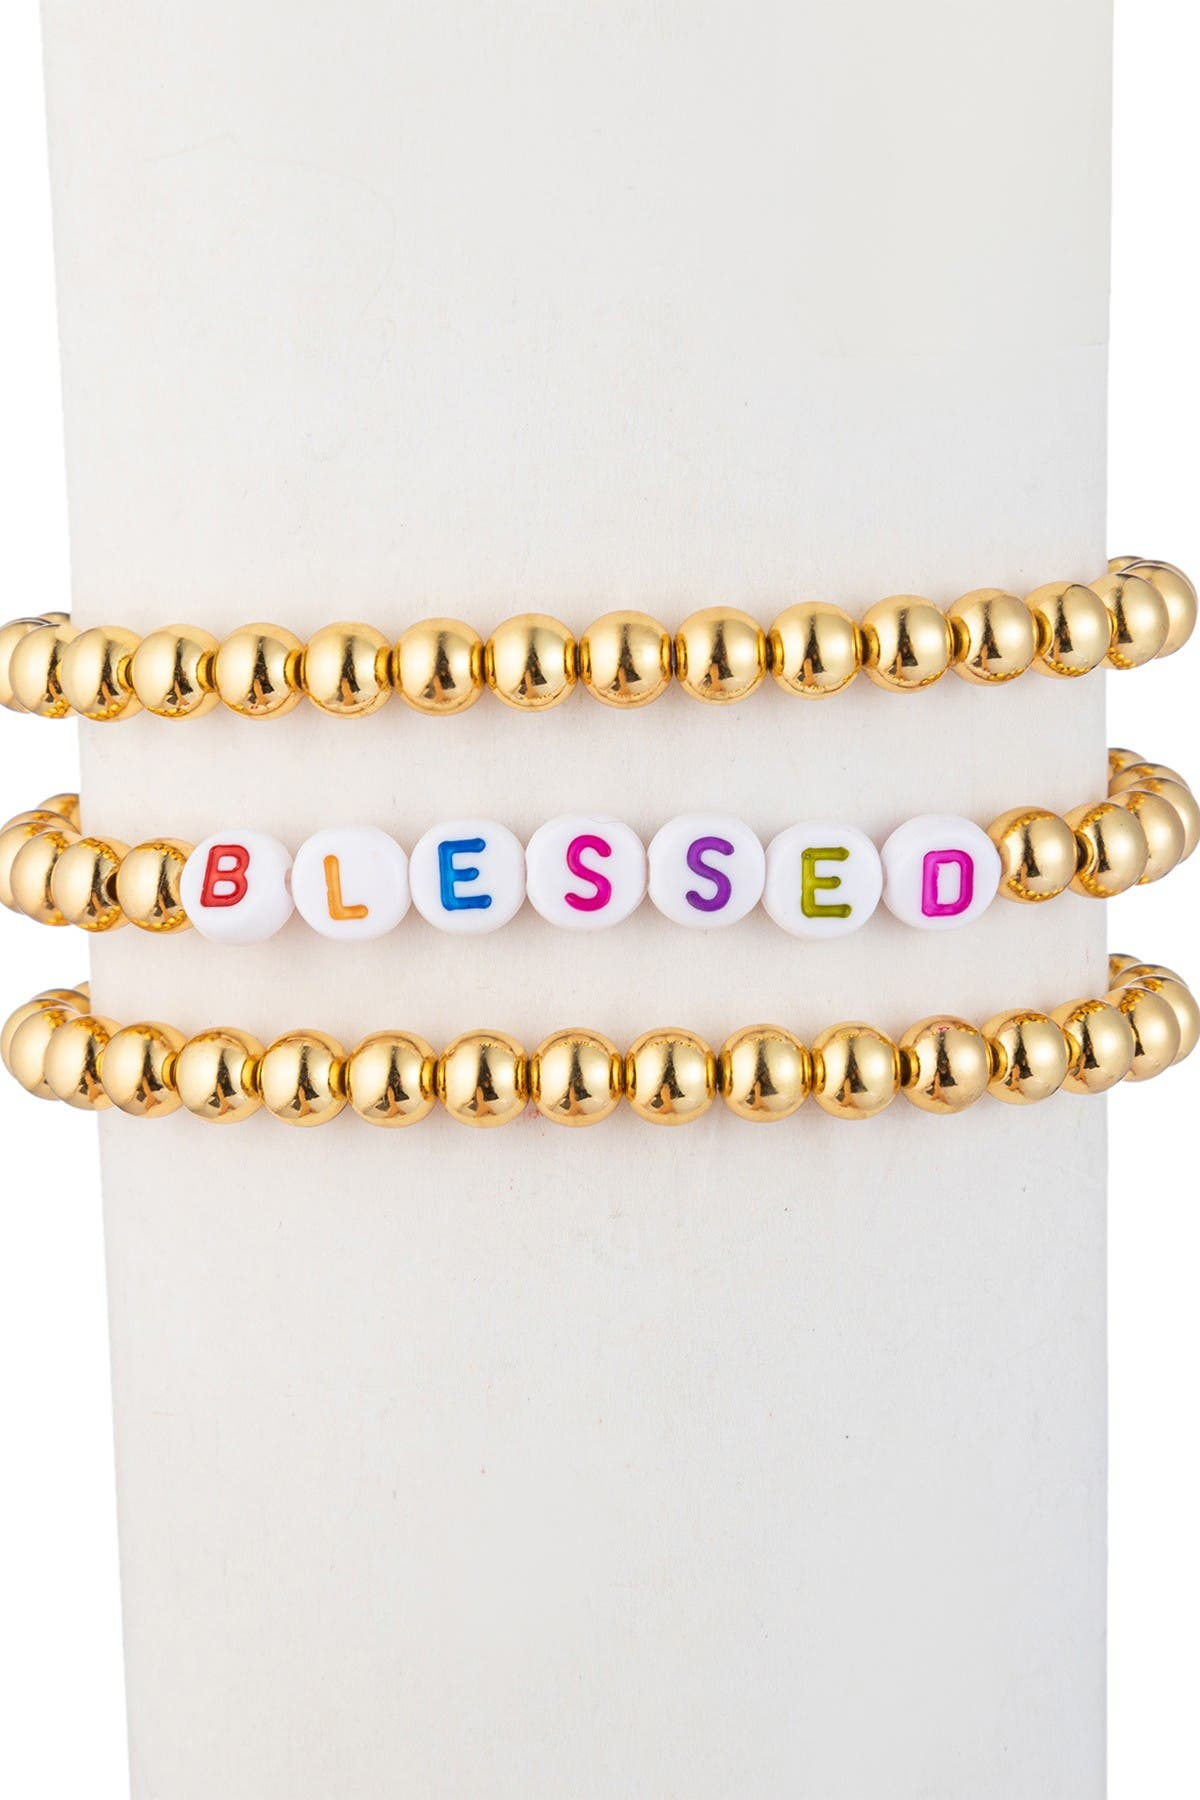 Eye Candy Los Angeles Blessed Titanium Beaded Bracelet Set at Nordstrom Rack